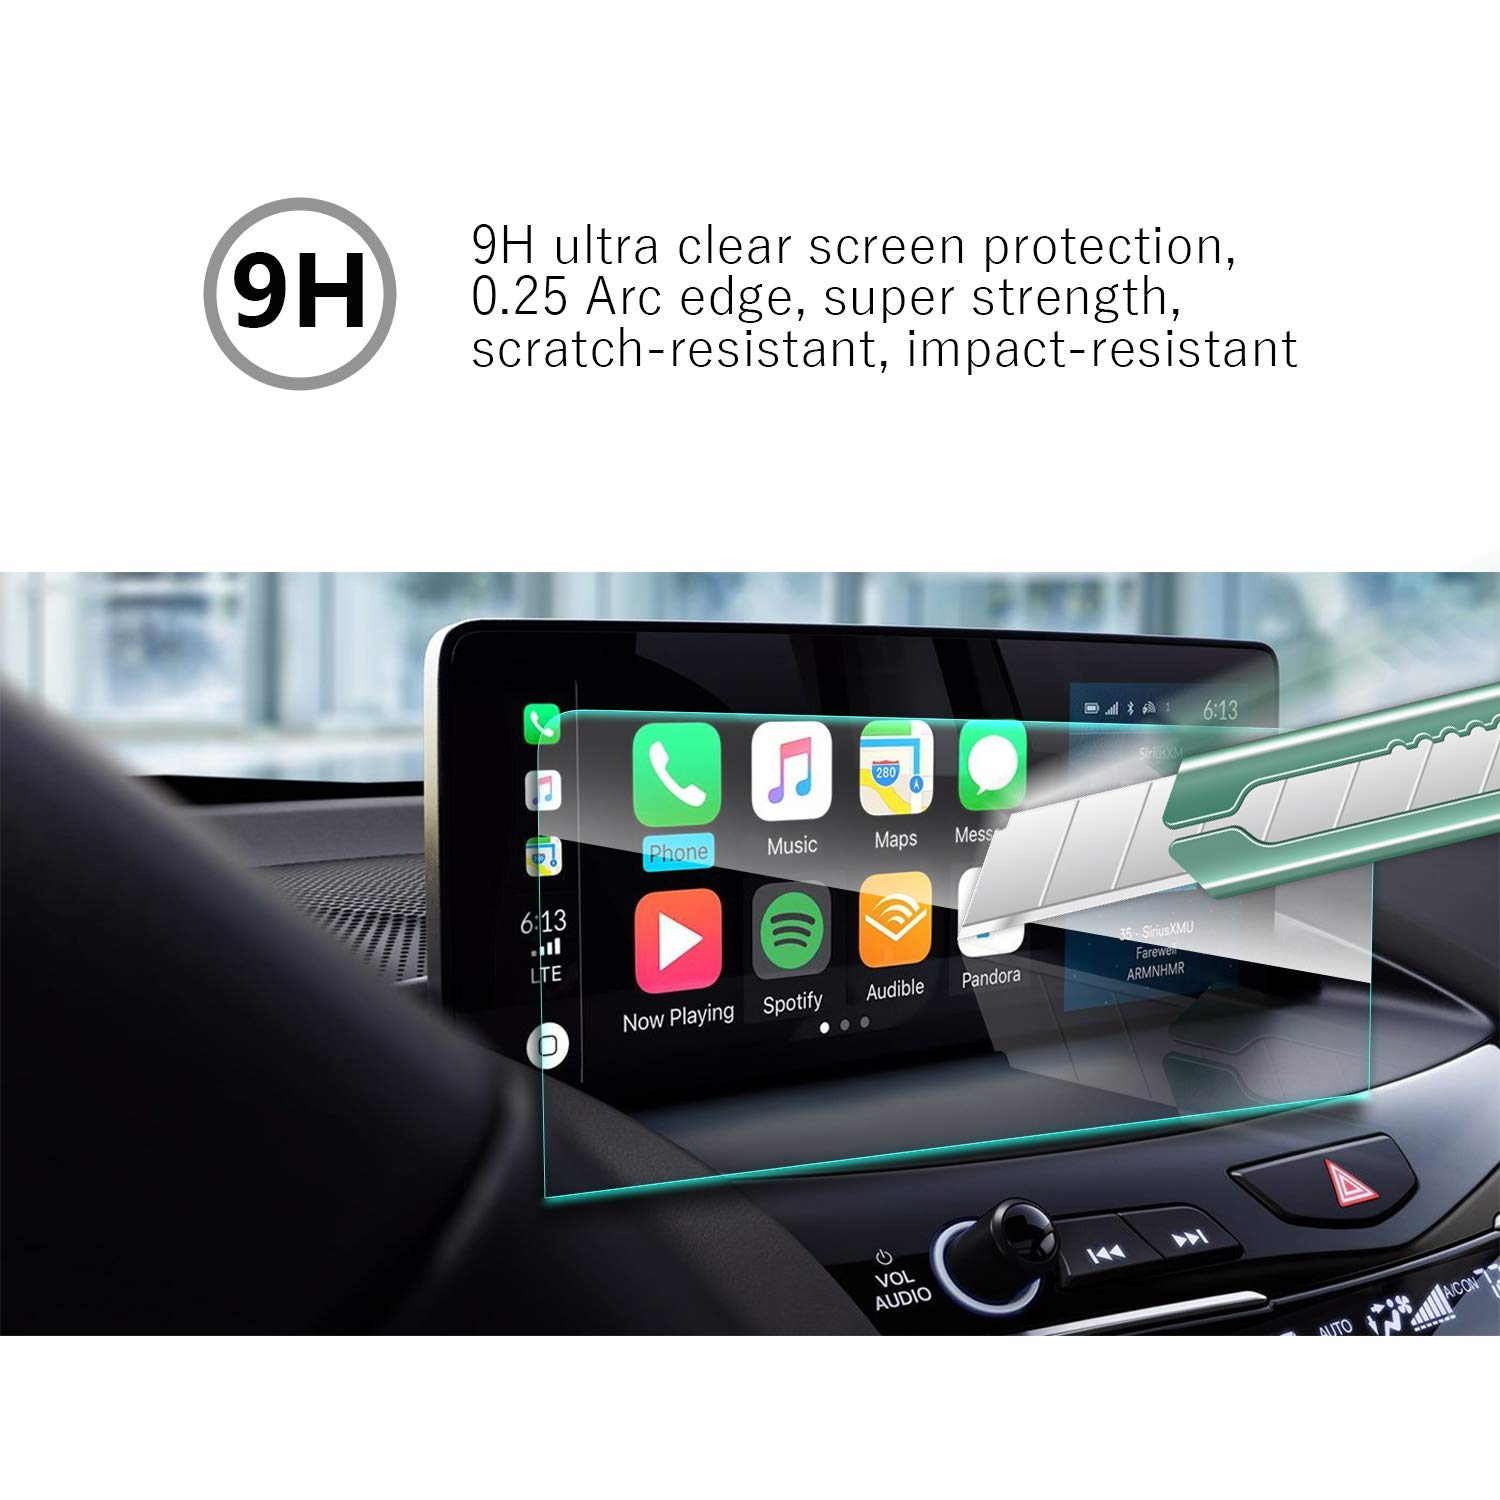 Easy to Clean High Definition Anti-Explosion Scratch Resistance Screen Protector YEE PIN 2019 Acura RDX 10.3Inch Navigation Protector